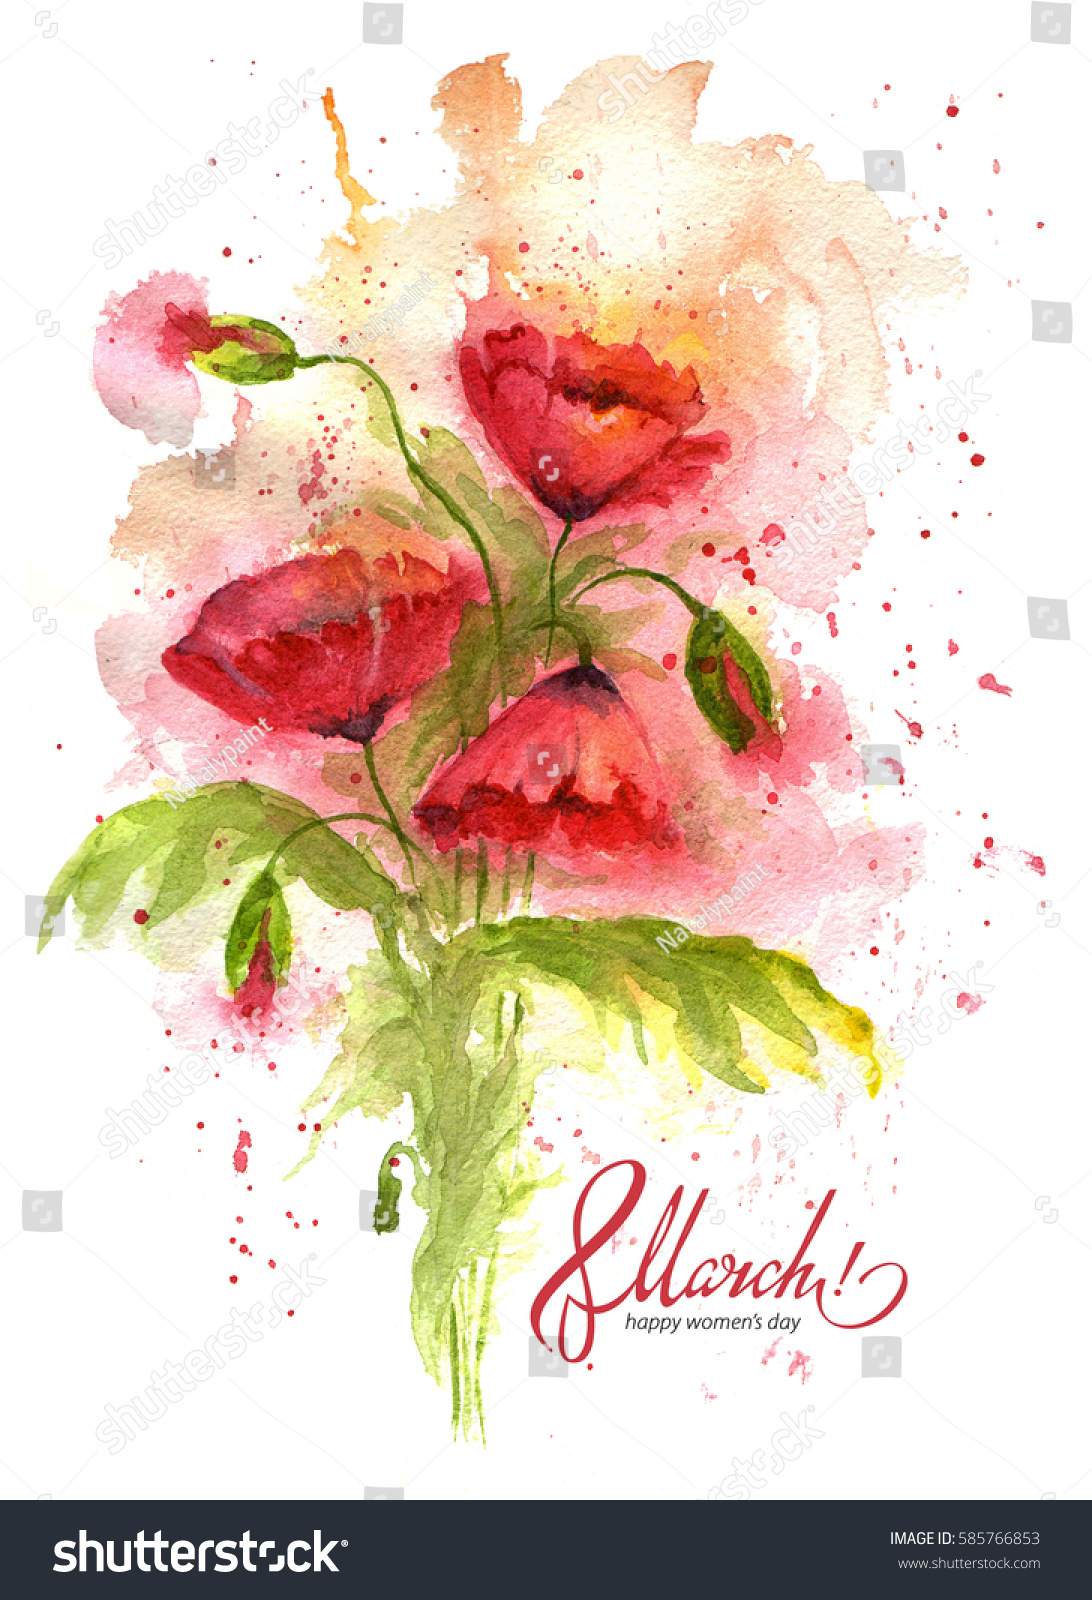 Greeting Card 8 March With Red Poppy Flowers International Womens